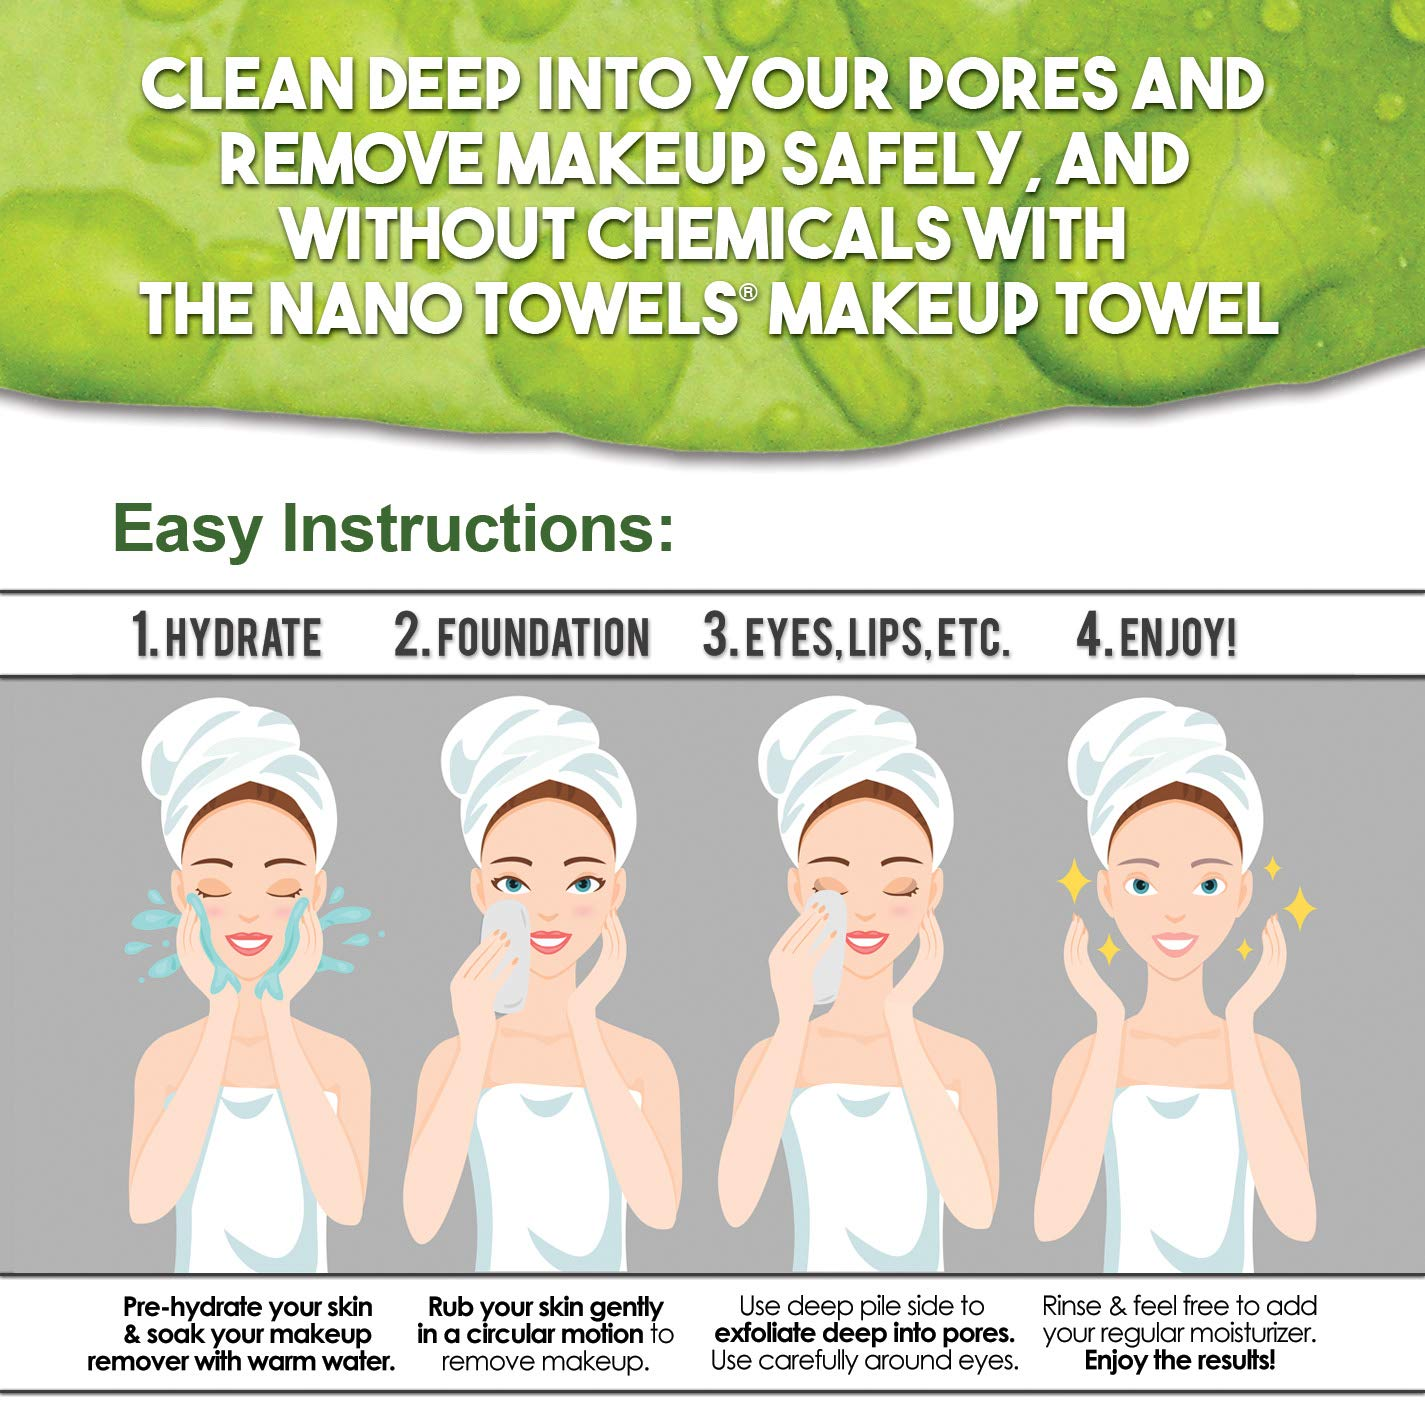 Airbnb Guest Ruined Towels: How To Remove Makeup From Towels